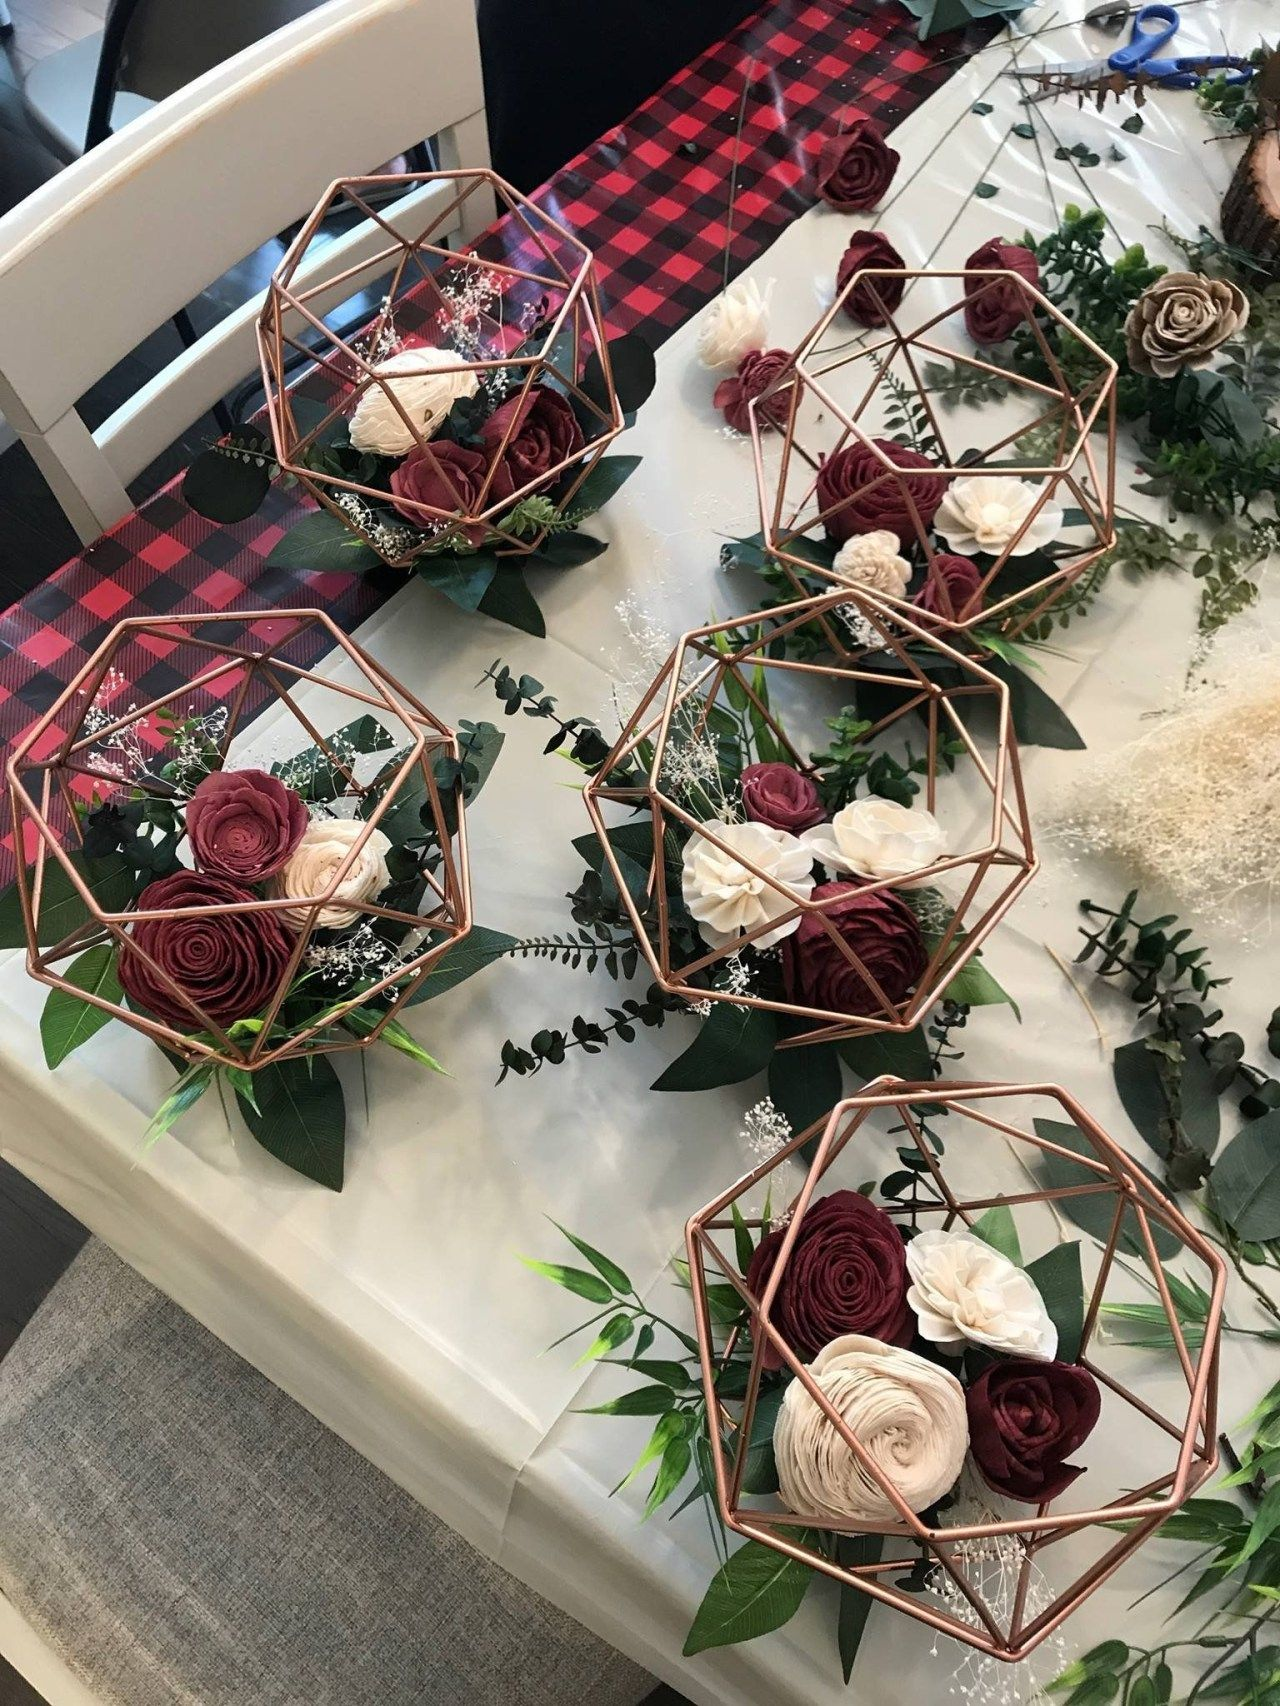 Amazing Wedding Decor Christmas Atmosphere 24 Decorhead Com Wedding Floral Centerpieces Wedding Decorations Wedding Deco